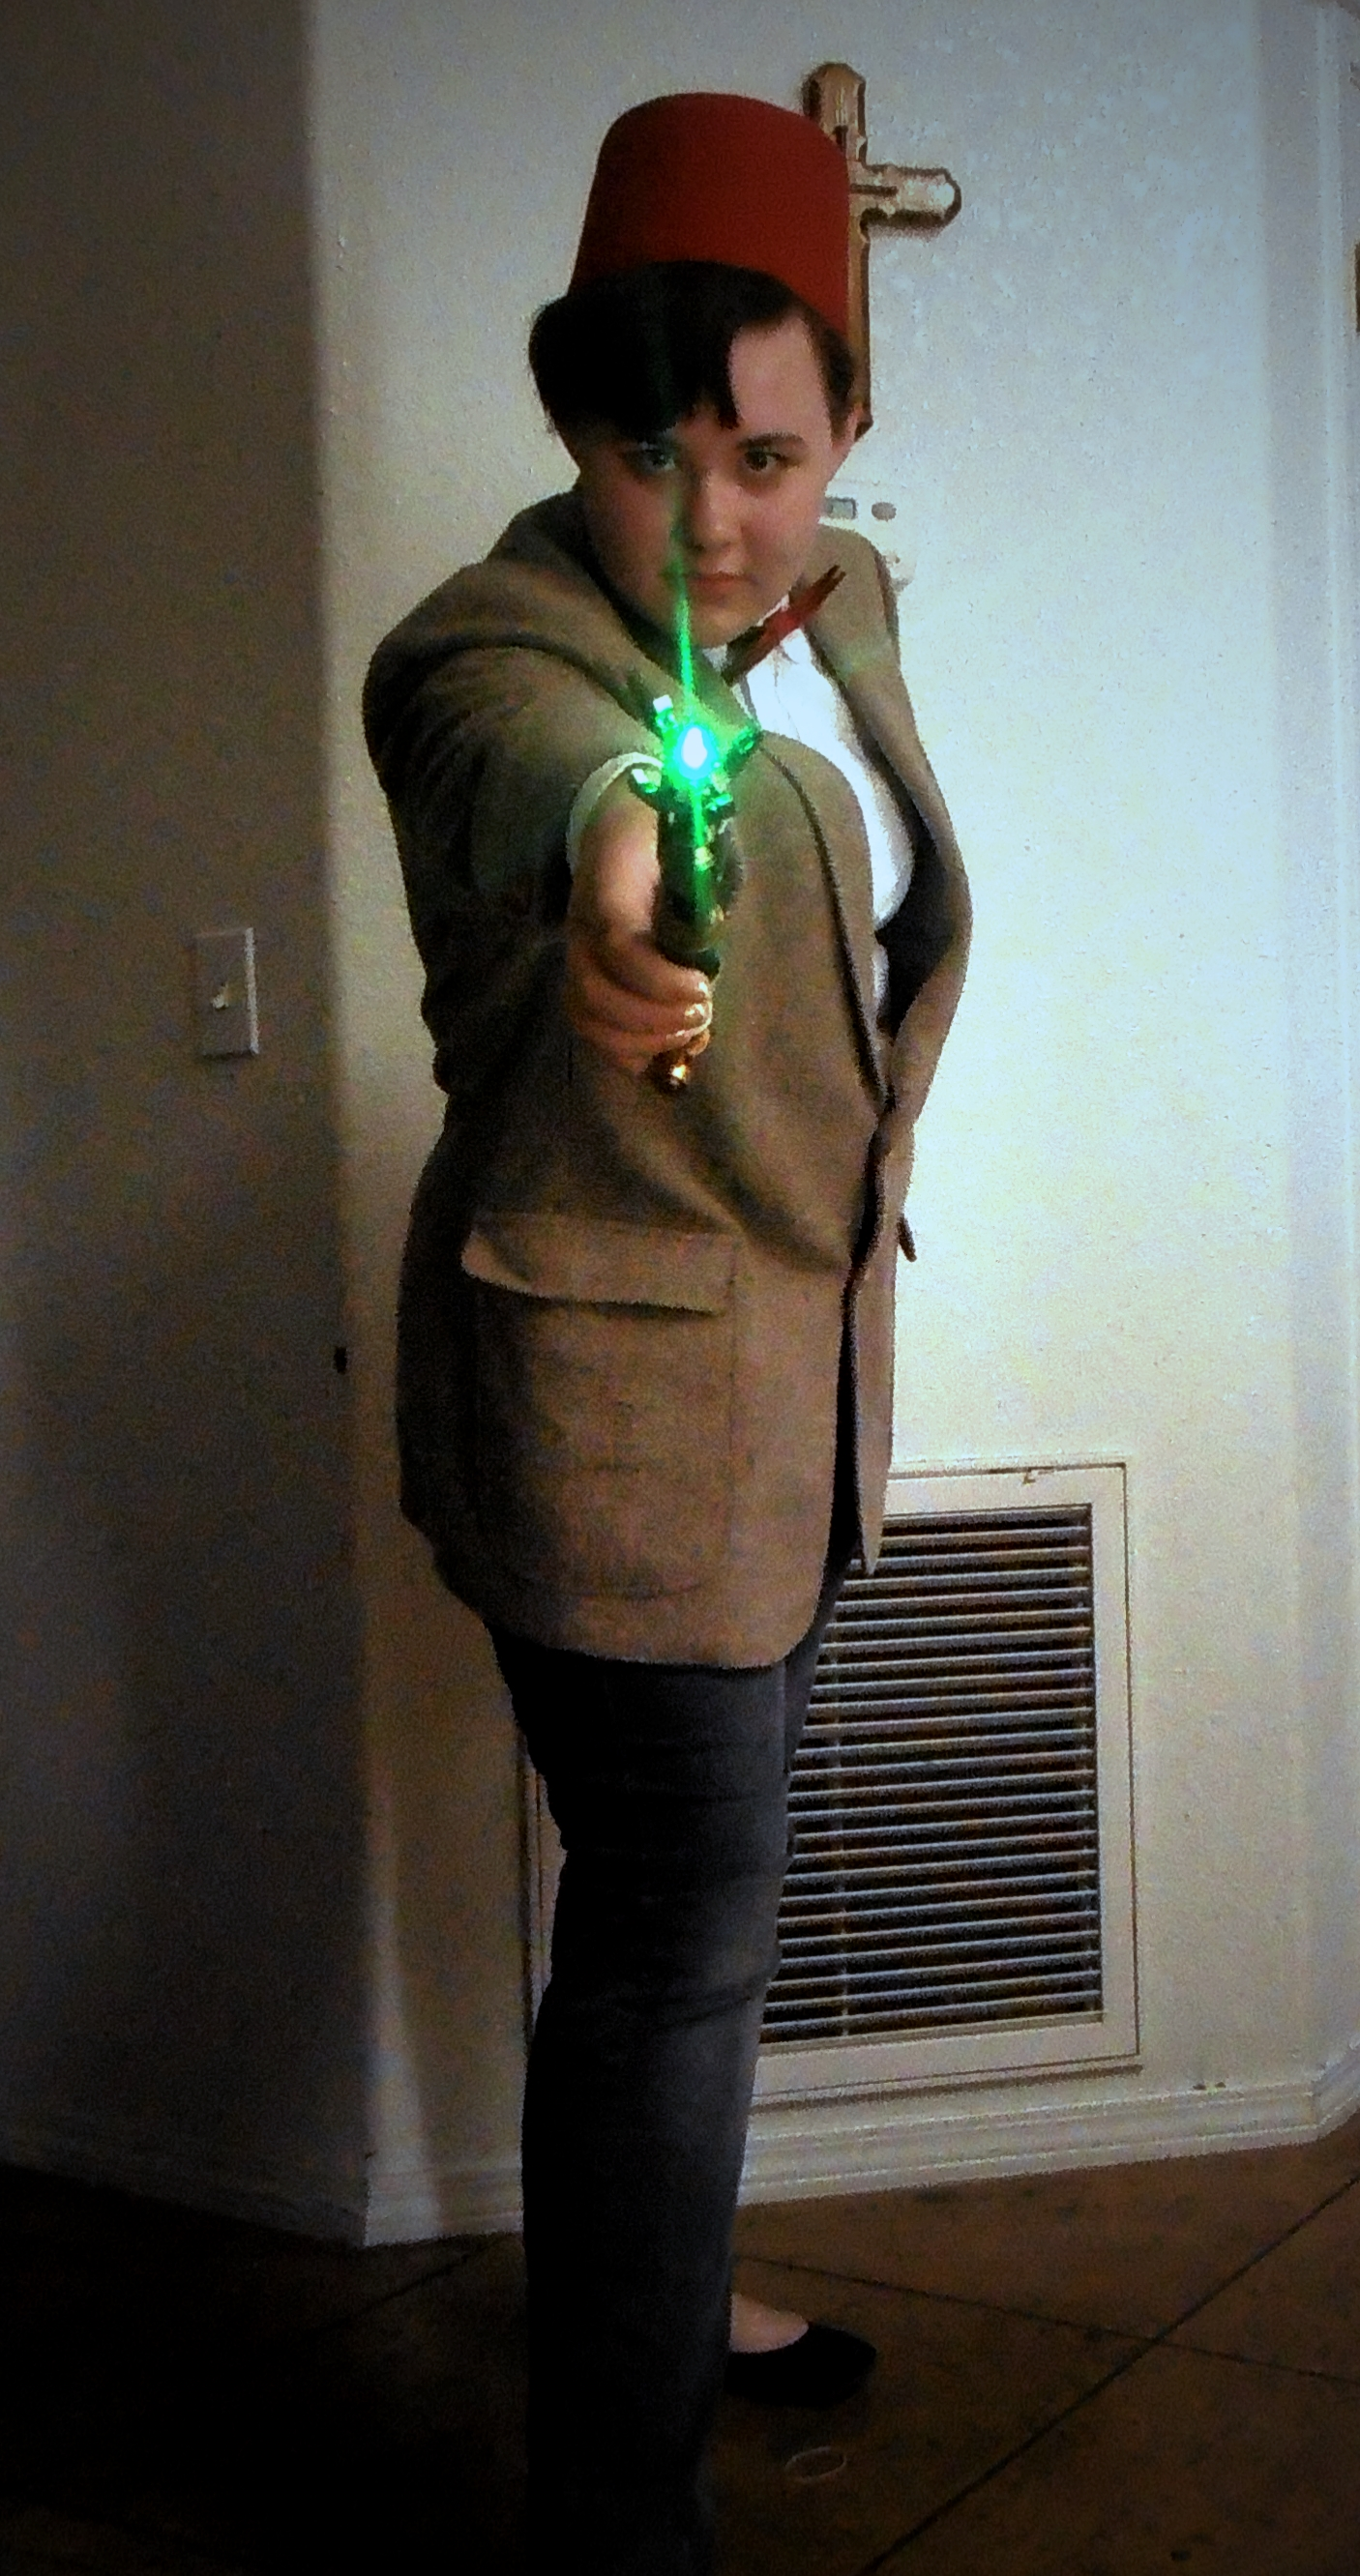 Doctor Who Cosplay Final by ConsultingTimeLord96